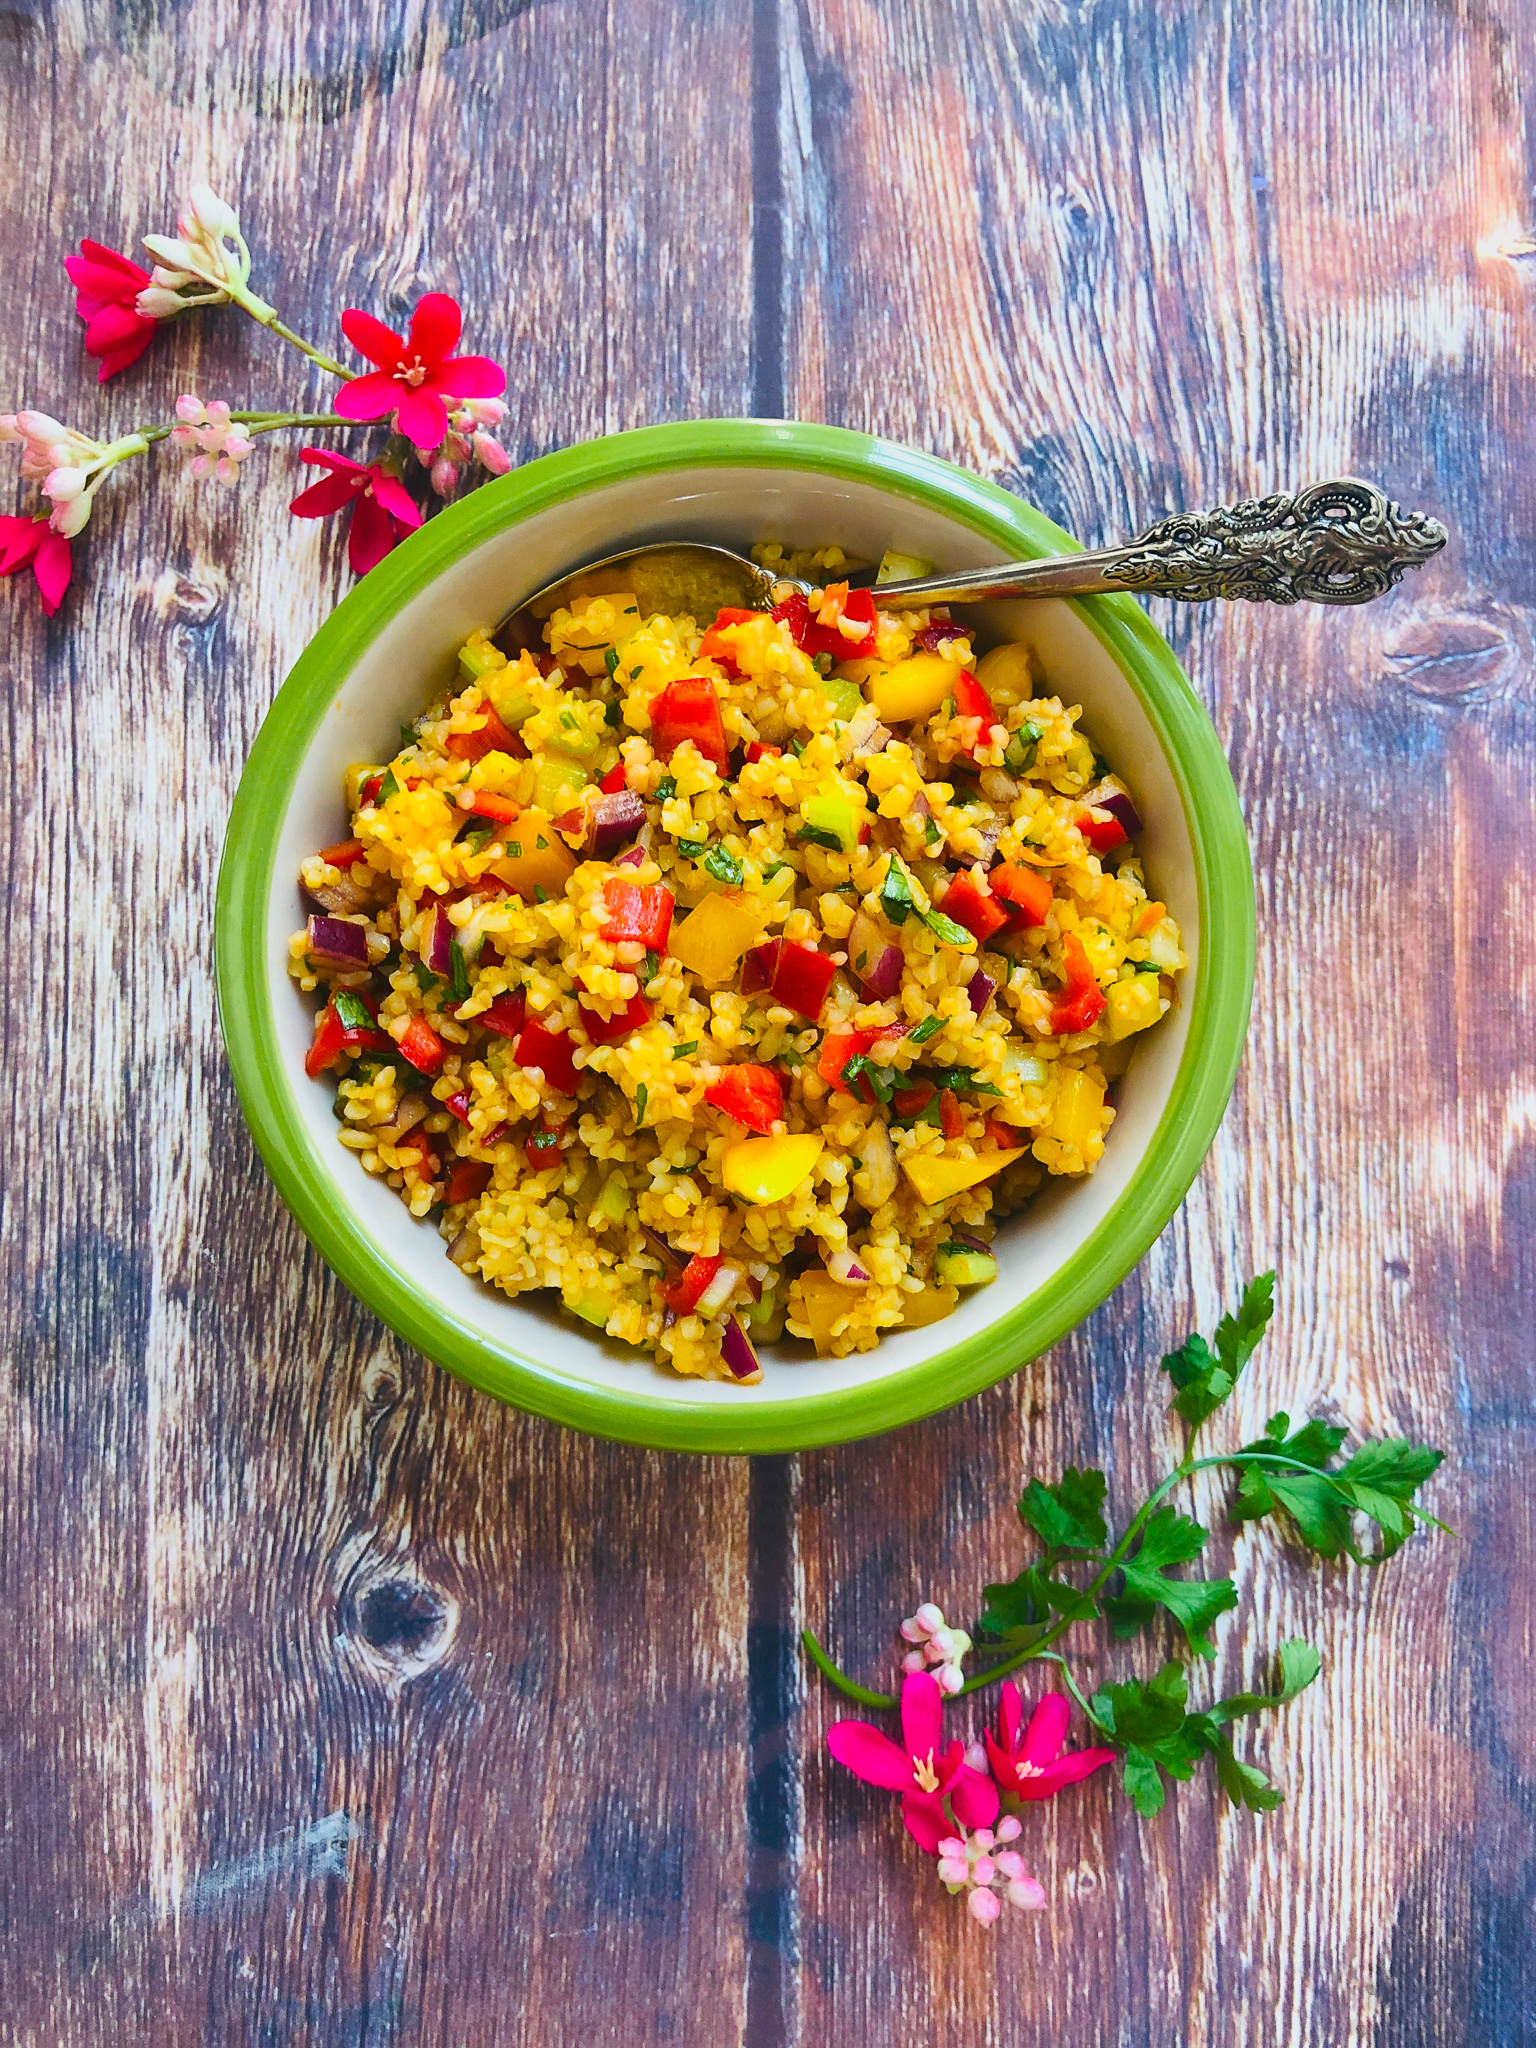 Spicy Bulgur Wheat Salad